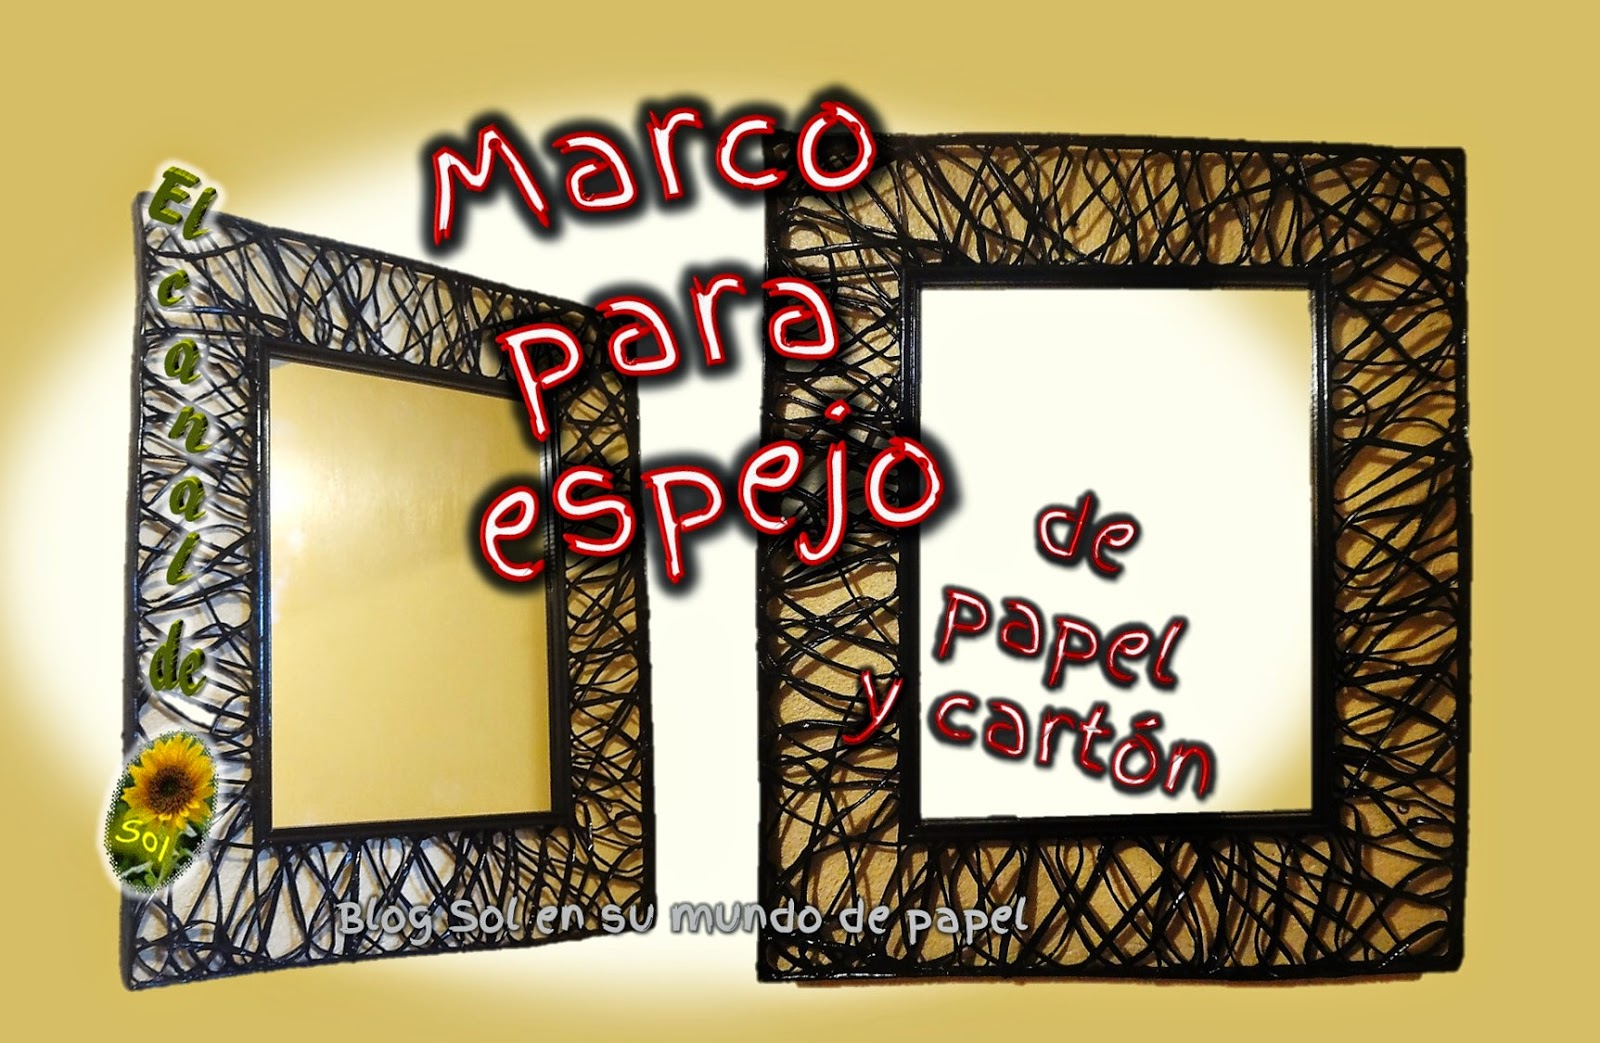 Marco para espejo de papel y cart n for Ideas para decorar un espejo sin marco